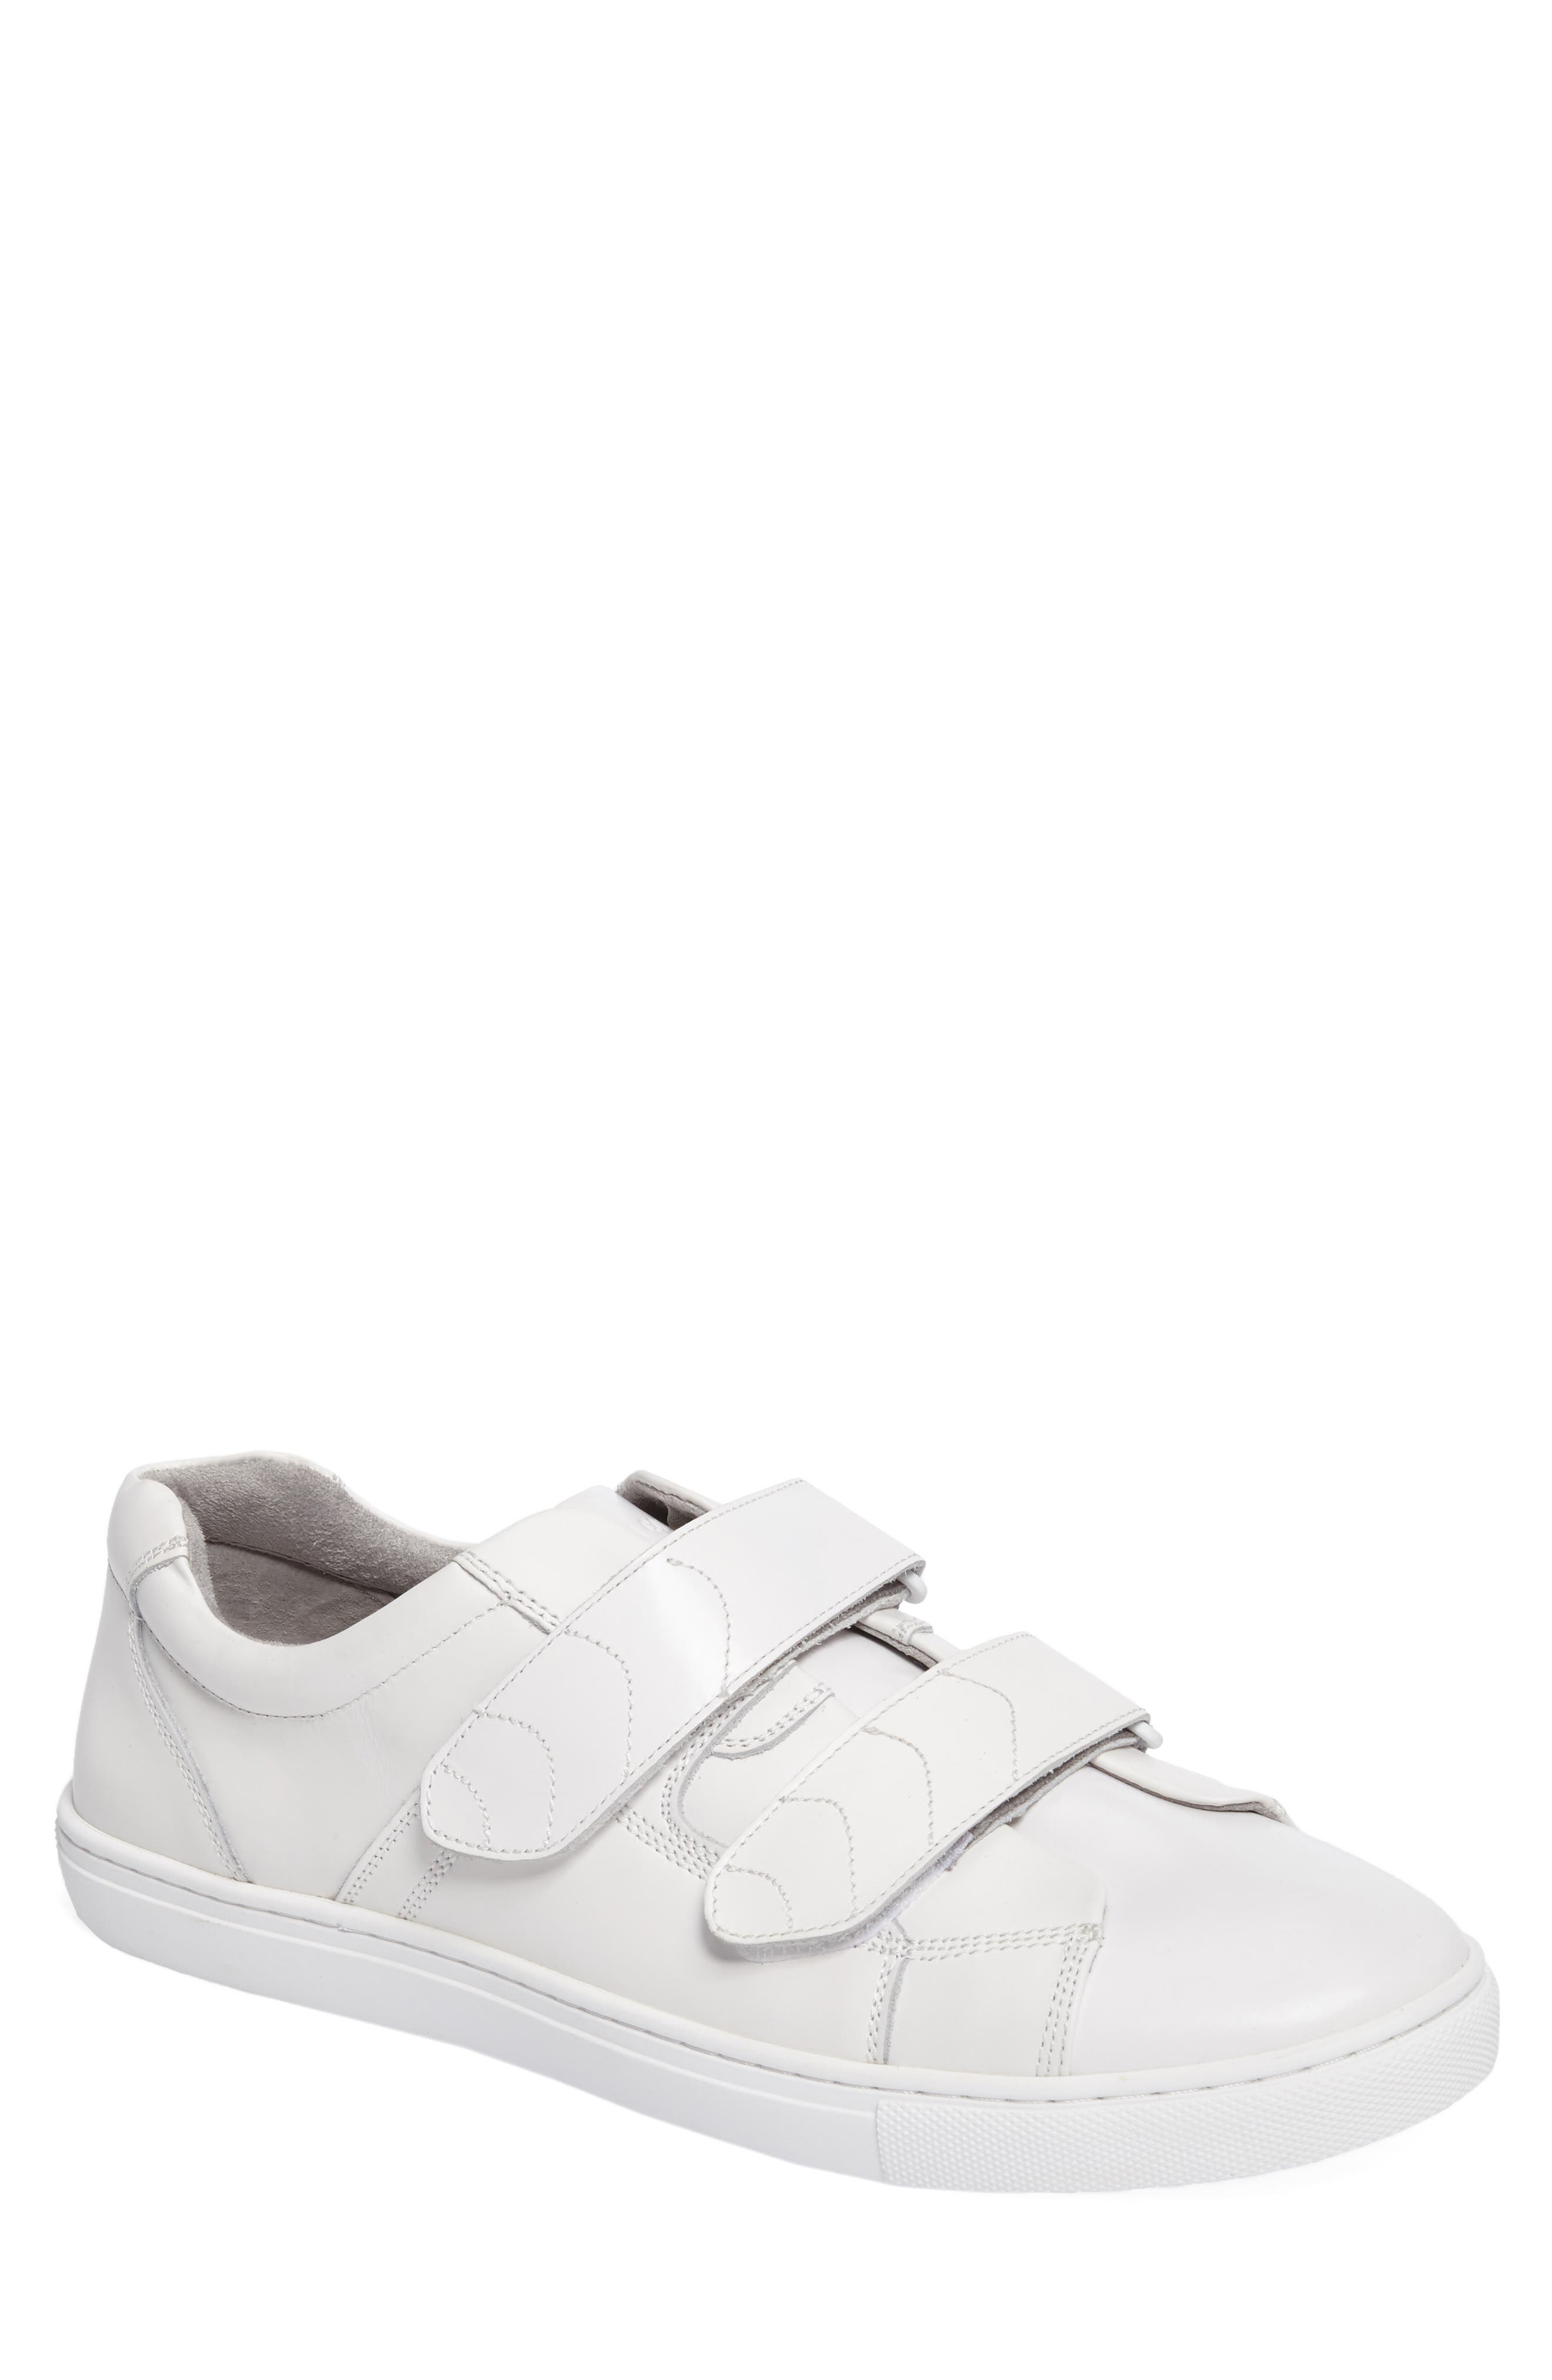 Main Image - Kenneth Cole New York Low Top Sneaker (Men)